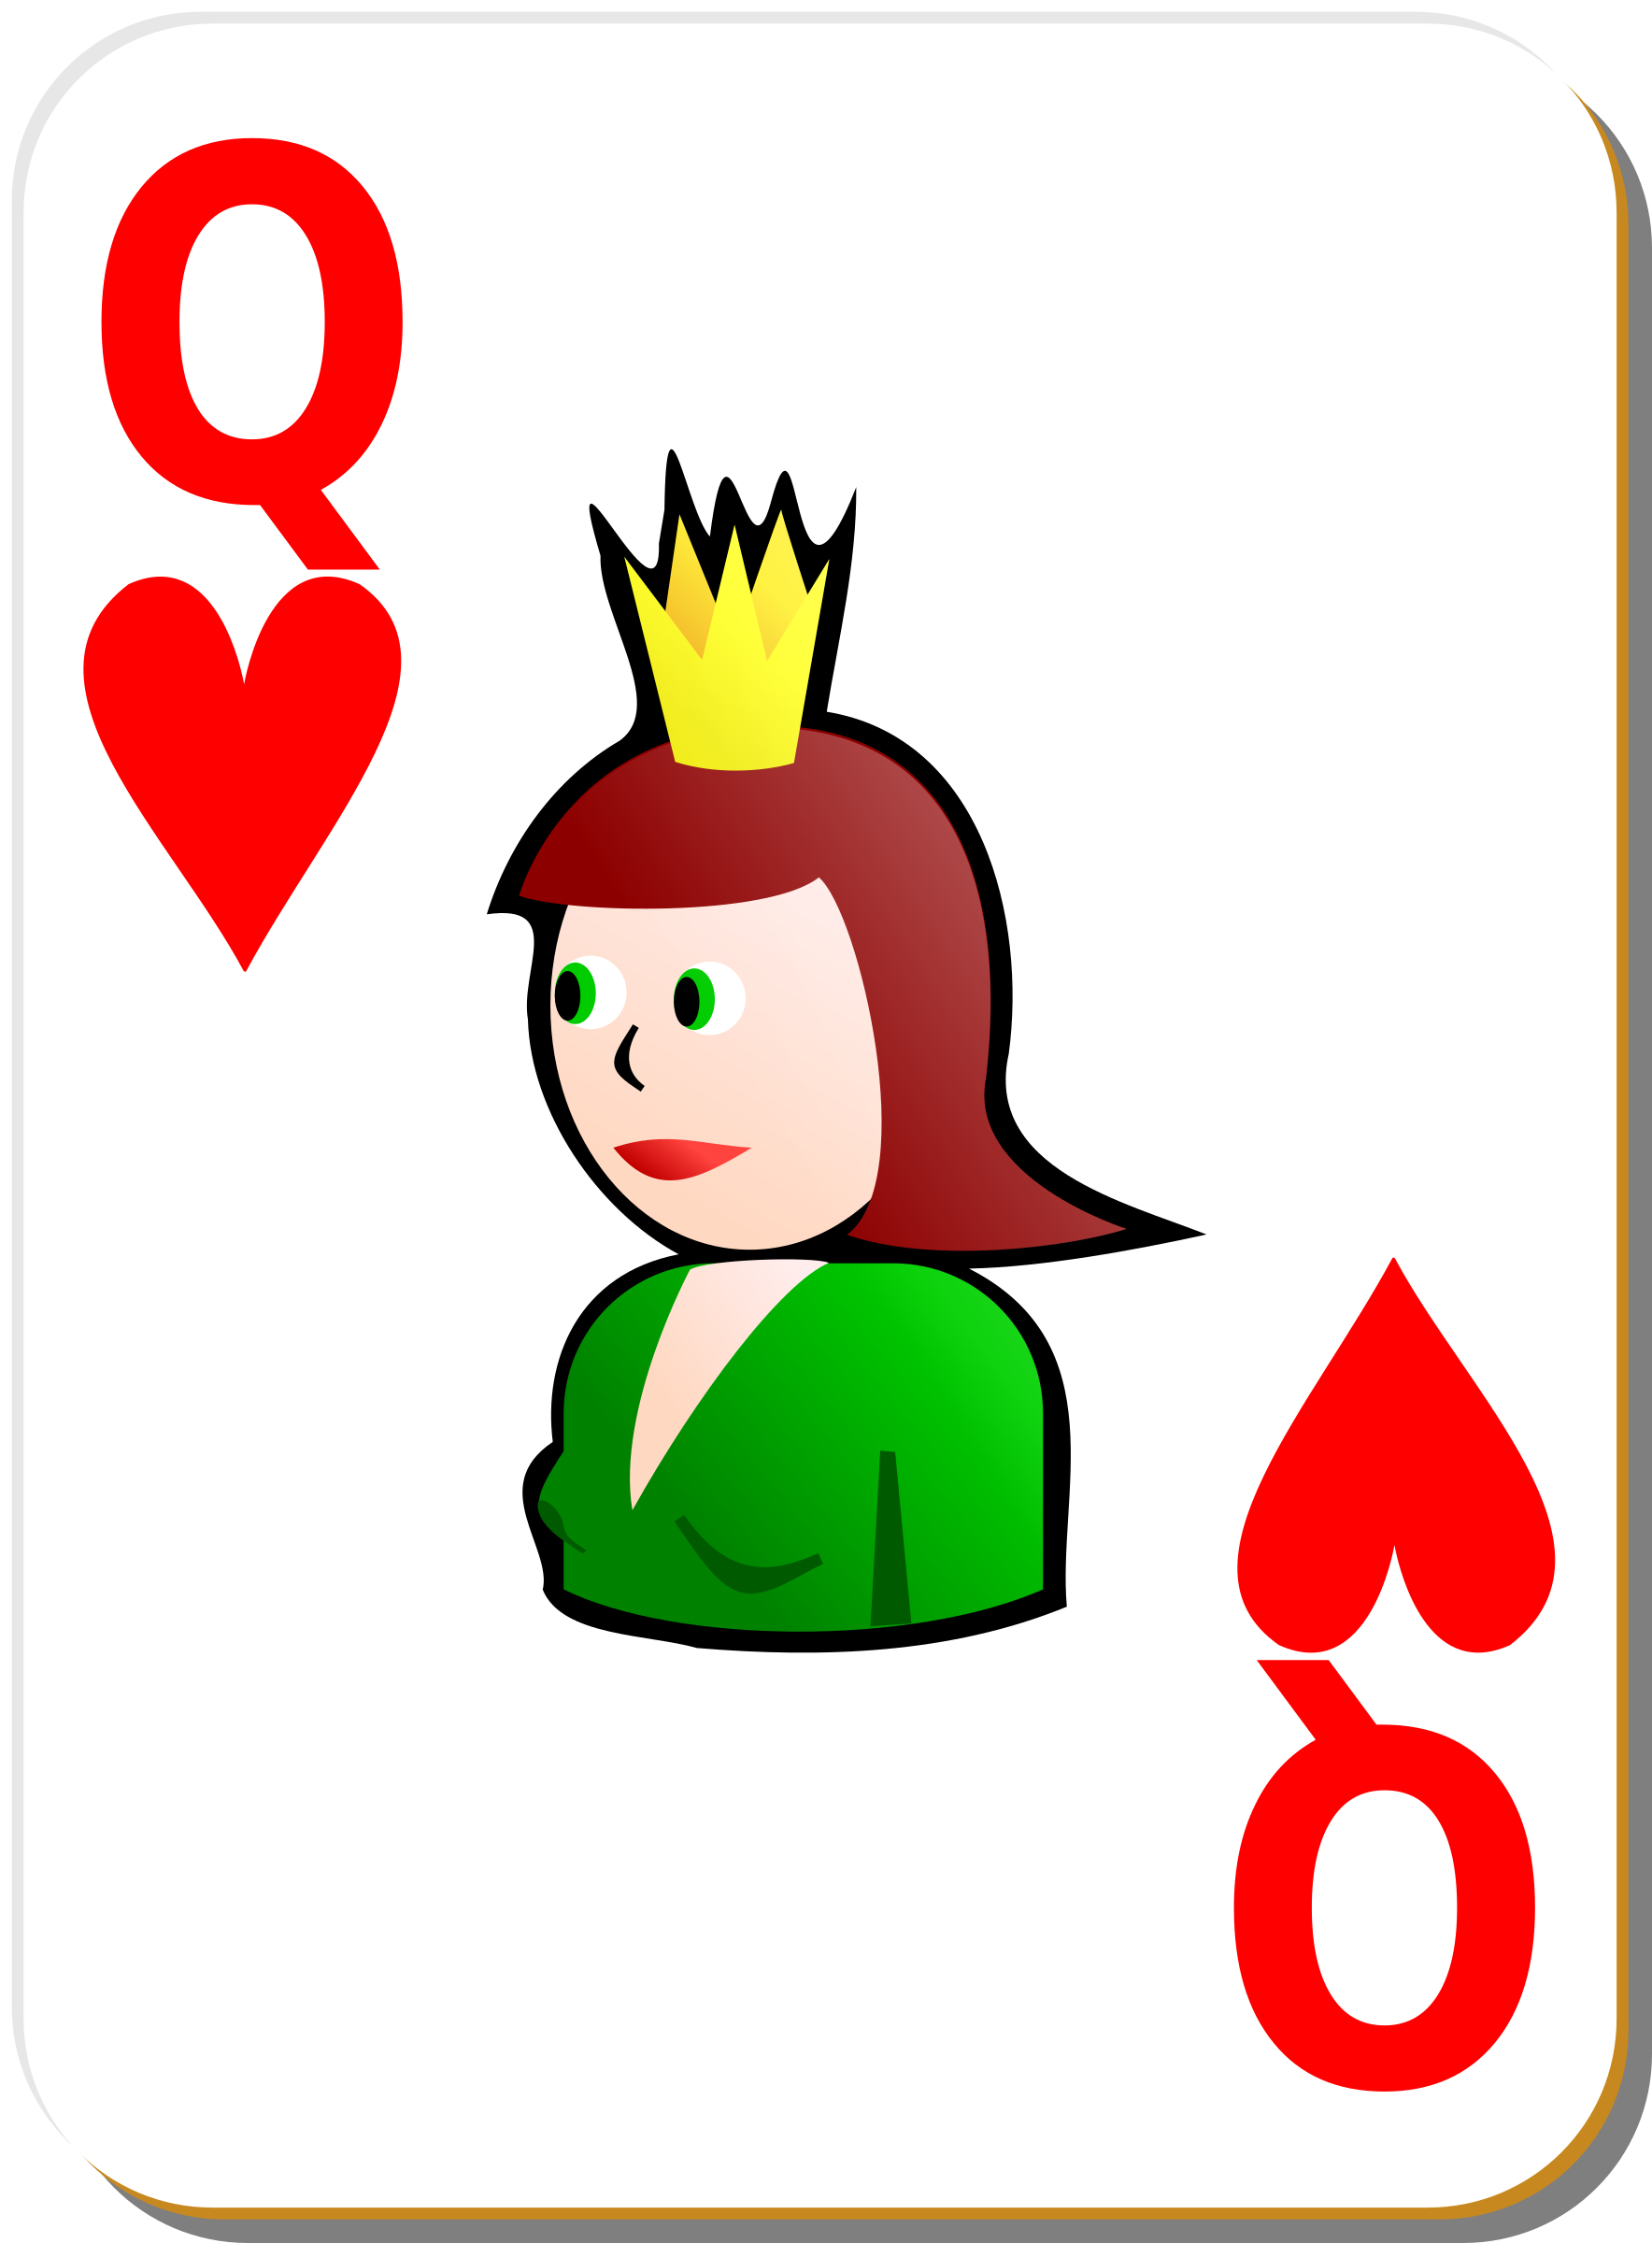 White deck: Queen of hearts by nicubunu